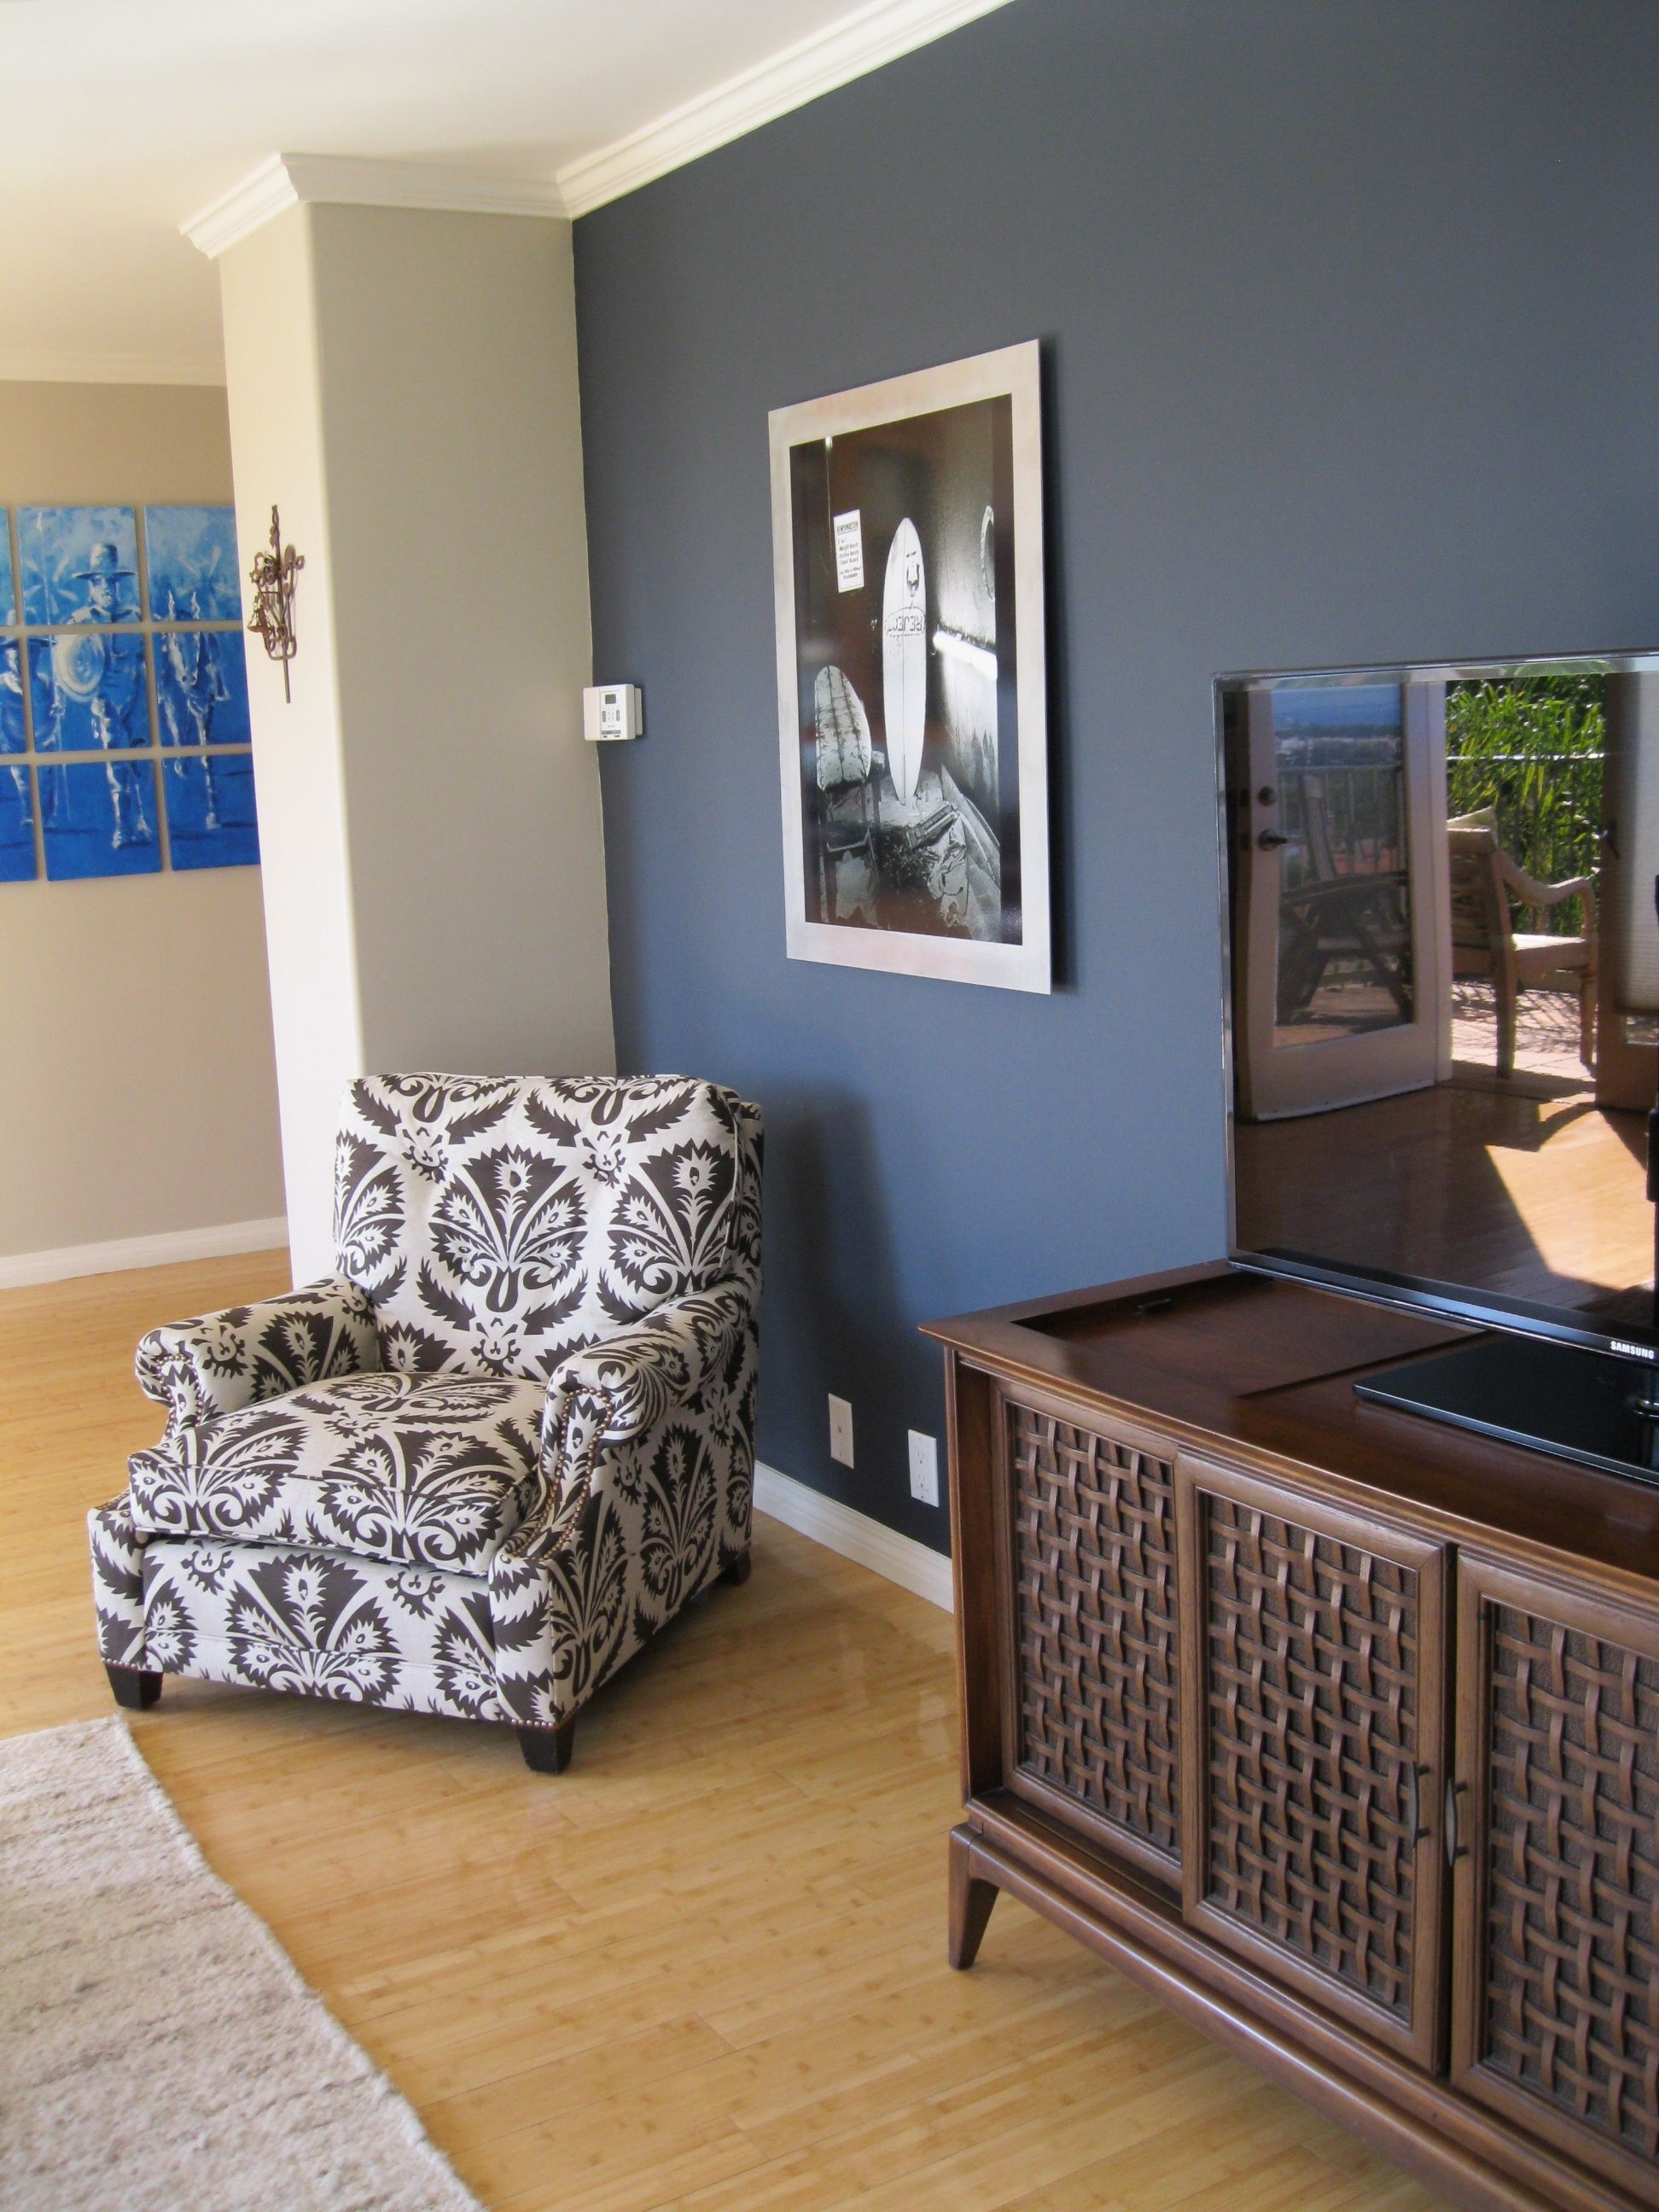 Shade Of Blue On Wall Camoflauges Tv. Love The Chair Too! | Home Within Most Recent Wall Accents Colors For Bedrooms (Gallery 10 of 15)